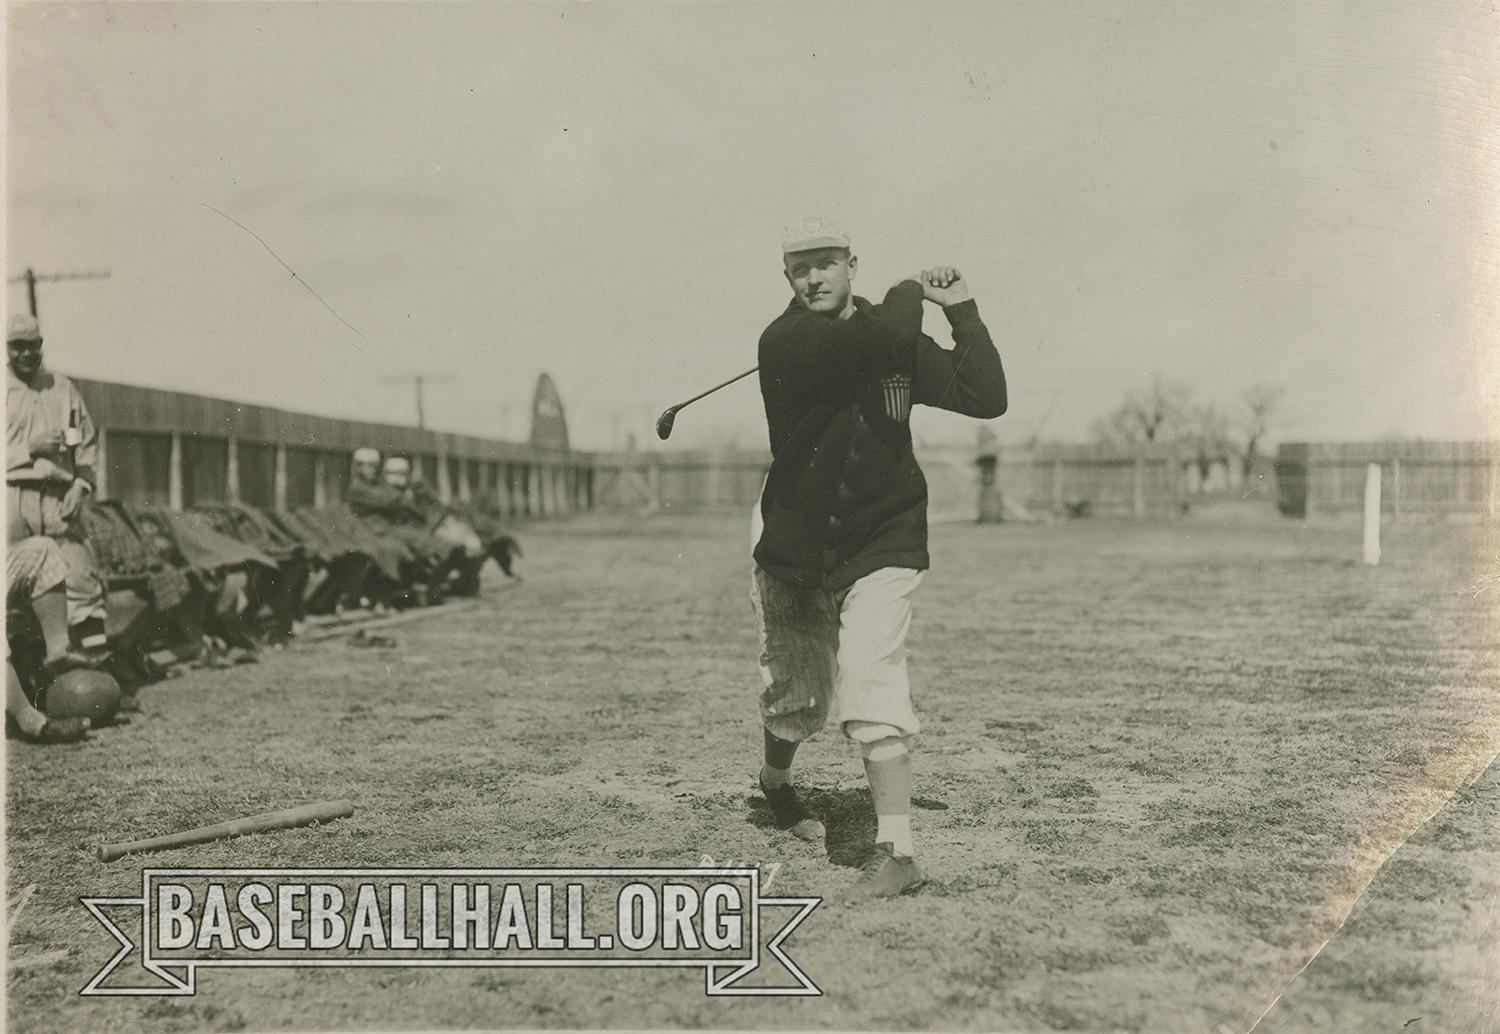 """Hall of Famer Christy Mathewson swings a golf club as his teammates look on. <a href=""""https://collection.baseballhall.org/PASTIME/christy-mathewson-photograph-1919-3"""">PASTIME</a> (National Baseball Hall of Fame and Museum)"""